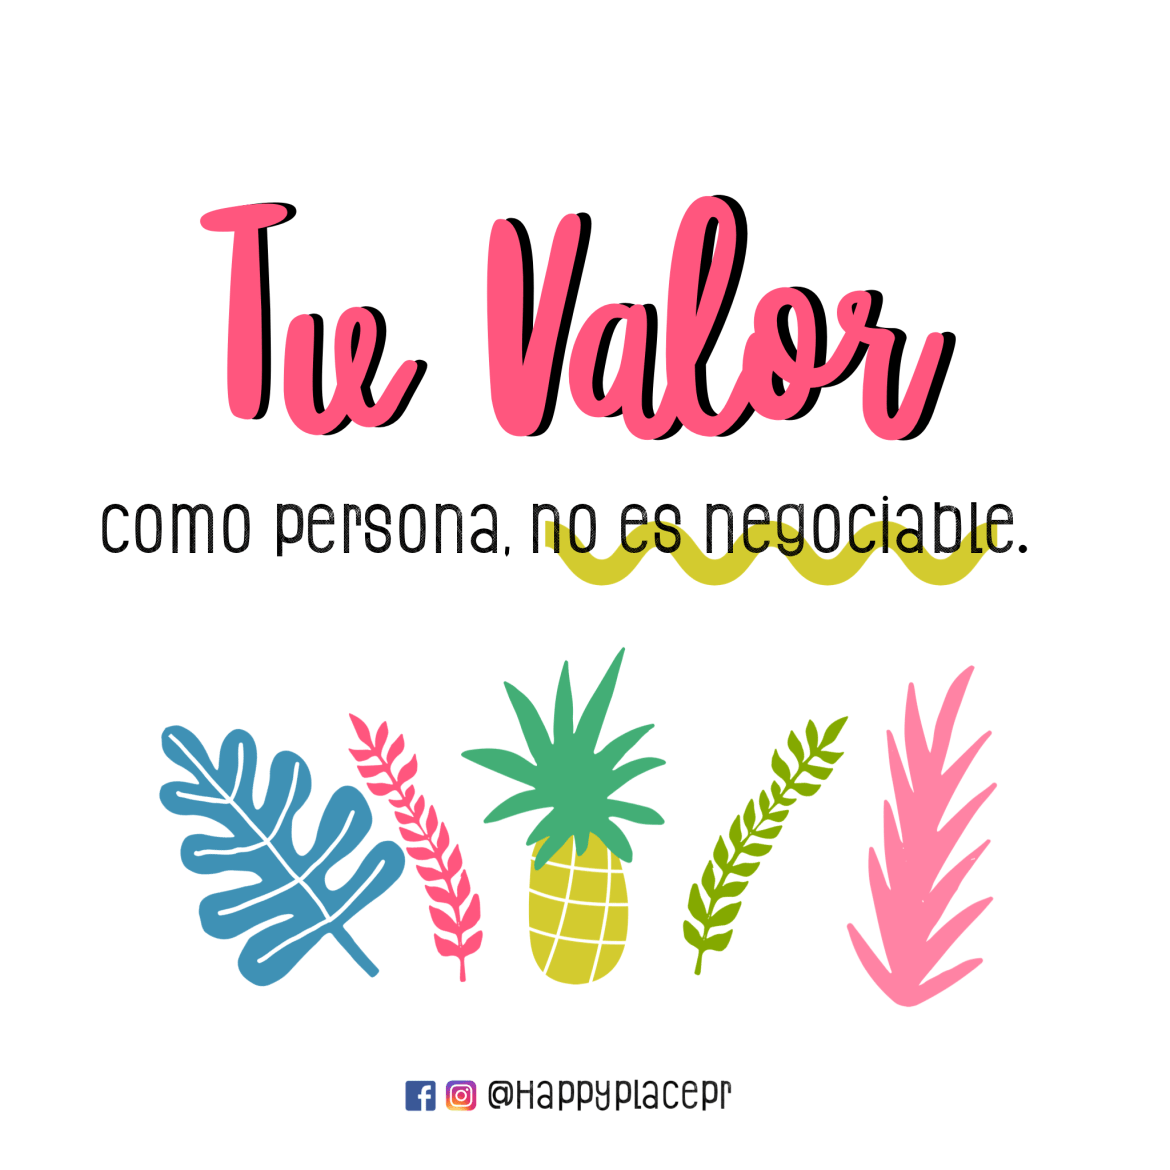 Tu valor como persona no es negociable